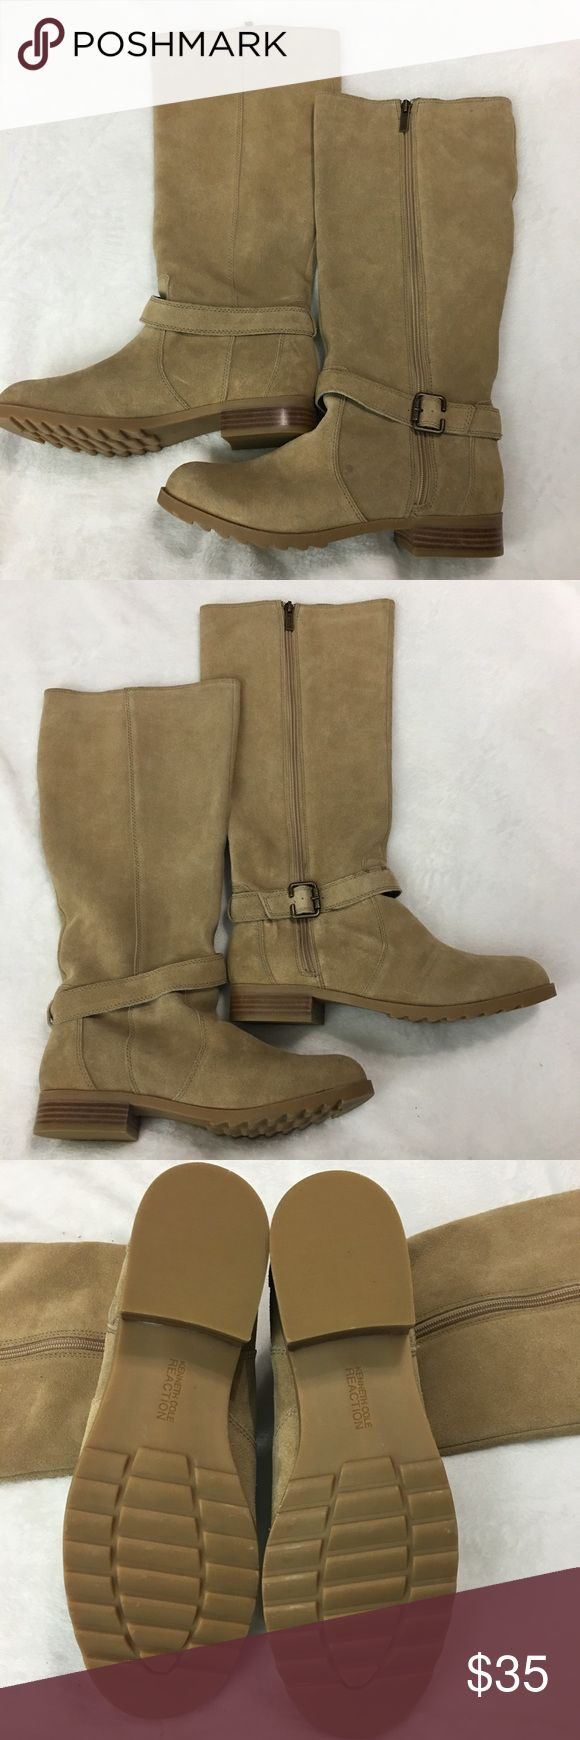 "Kenneth Cole Reaction Skinny Love Boots Size 10M This is a pair of New Without Box women's Kenneth Cole Reaction Skinny Love Tan Leather Boots Size 10M. These boots are New Without Box and have never been worn. They feature a 1"" Block Heel and zip up sides. Please take a look at all photos for condition and if you have any questions feel free to ask. Kenneth Cole Reaction Shoes Heeled Boots"